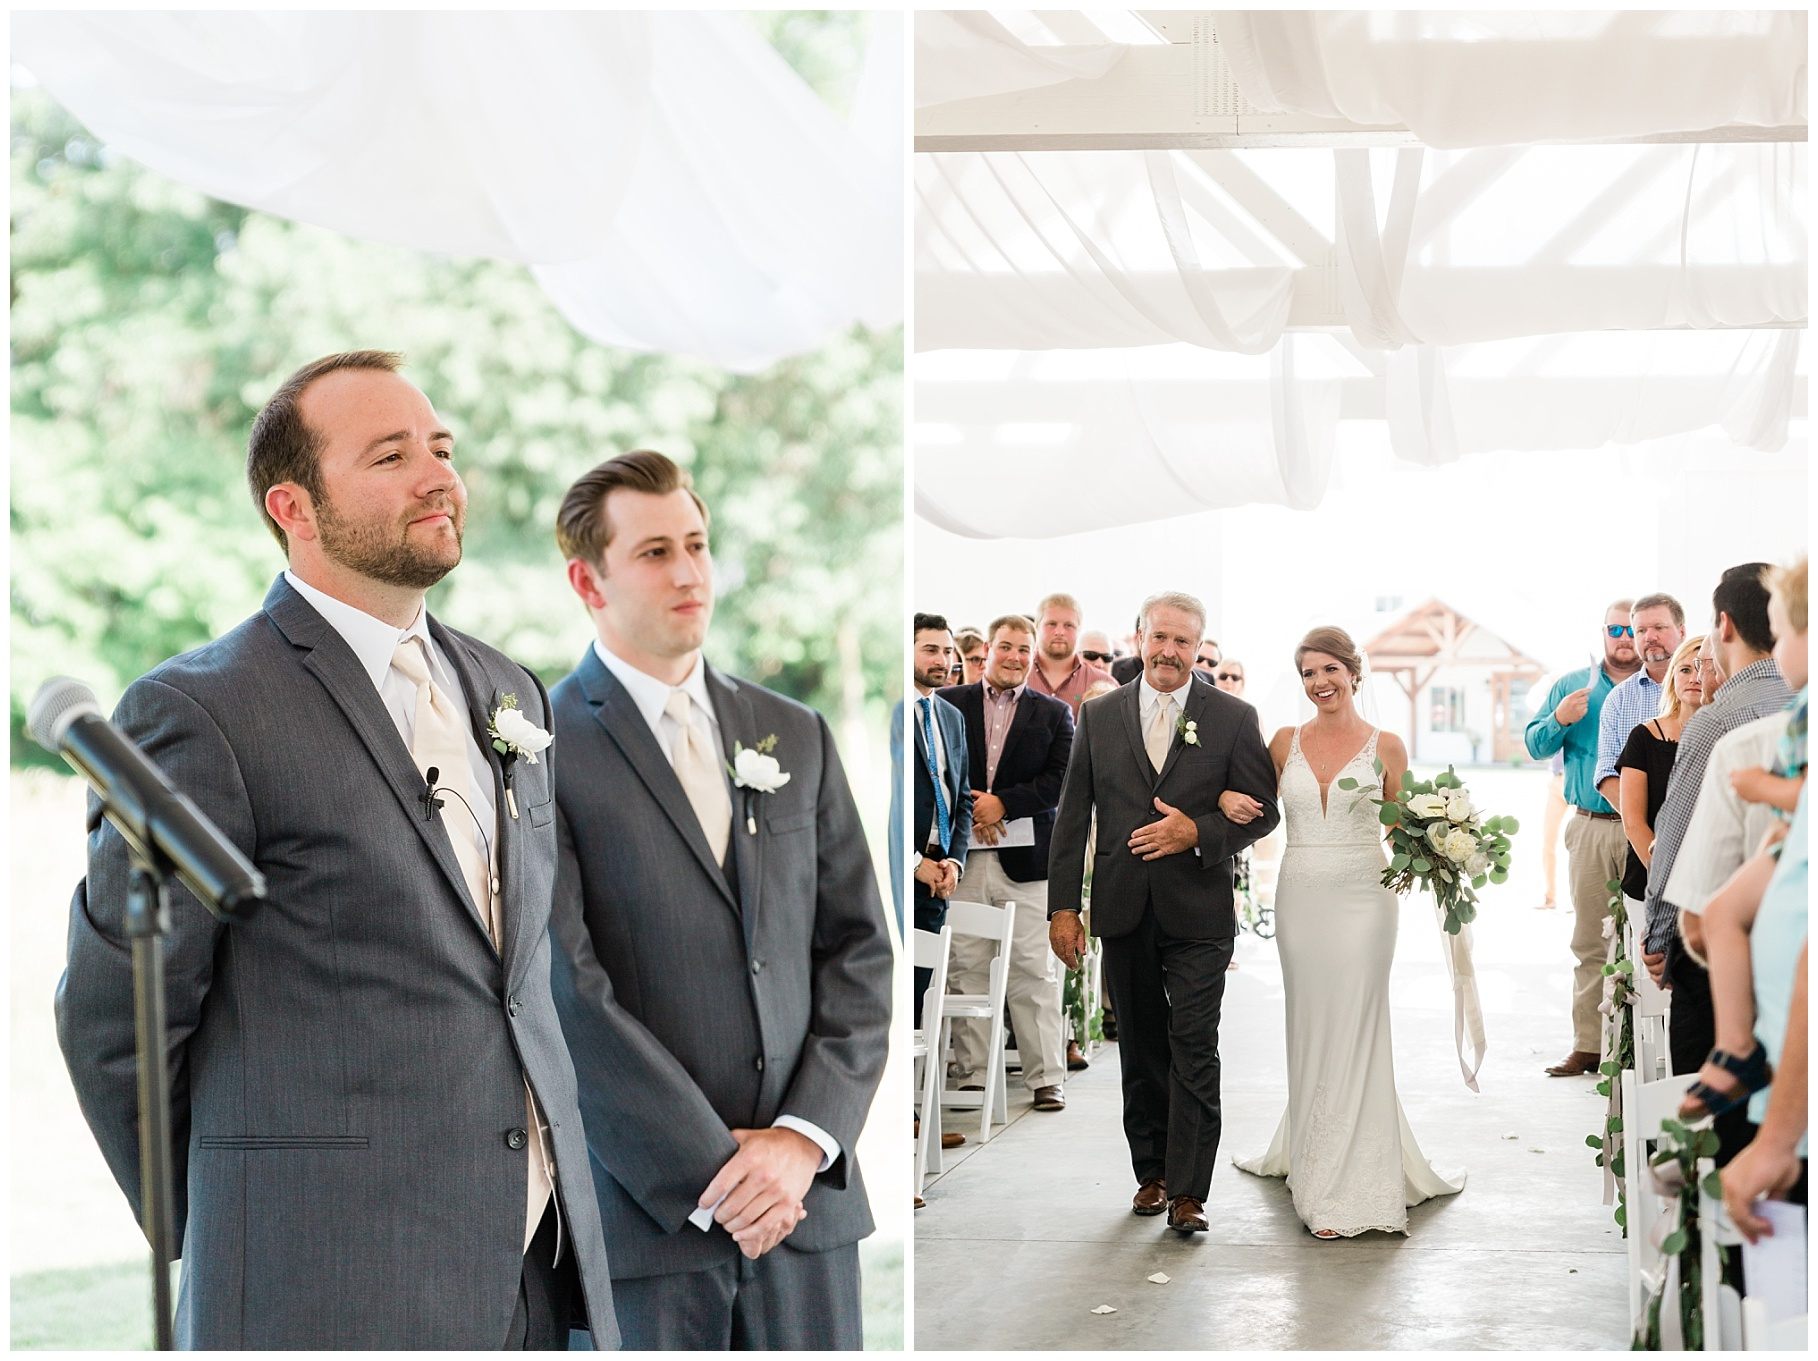 Wedding Ceremony with Confetti Pop at Emerson Fields Venue by Associate Wedding Photographer for Kelsi Kliethermes Photography Best Columbia Missouri and Maui Hawaii Wedding Photographer_0047.jpg